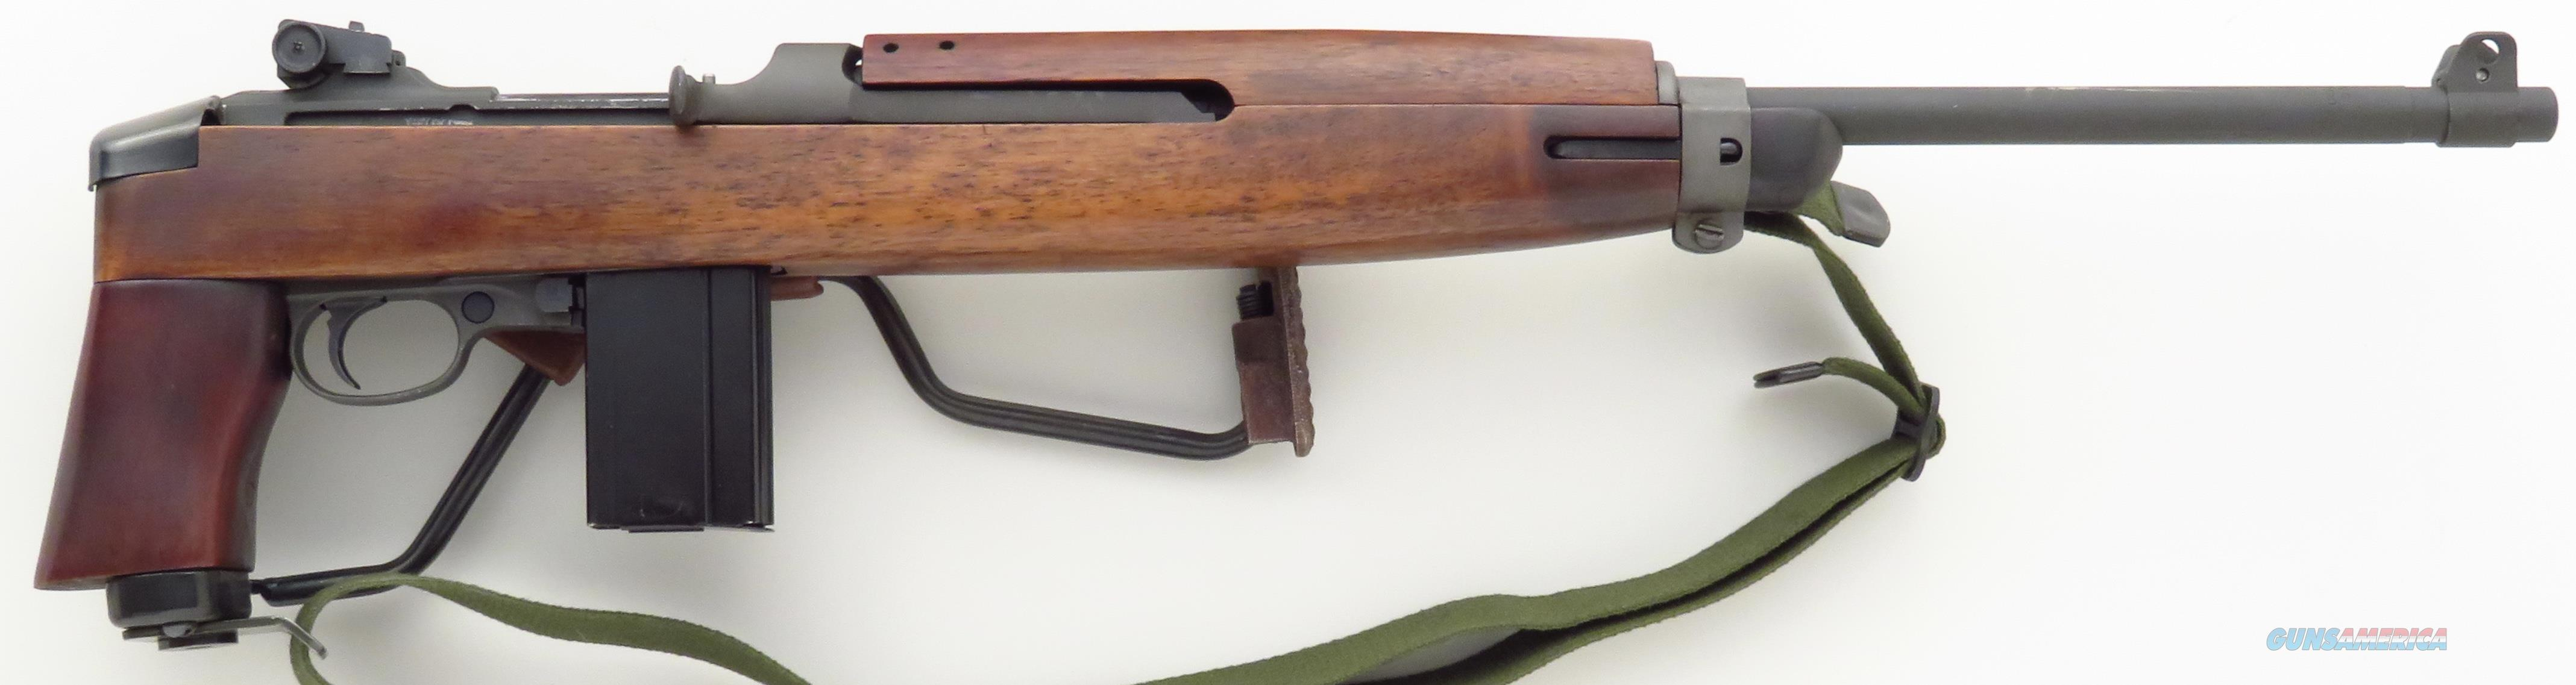 Inland Paratrooper .30 Carbine, side folder, new, serial 9000005, 18-inch barrel  Guns > Rifles > Military Misc. Rifles US > M1 Carbine